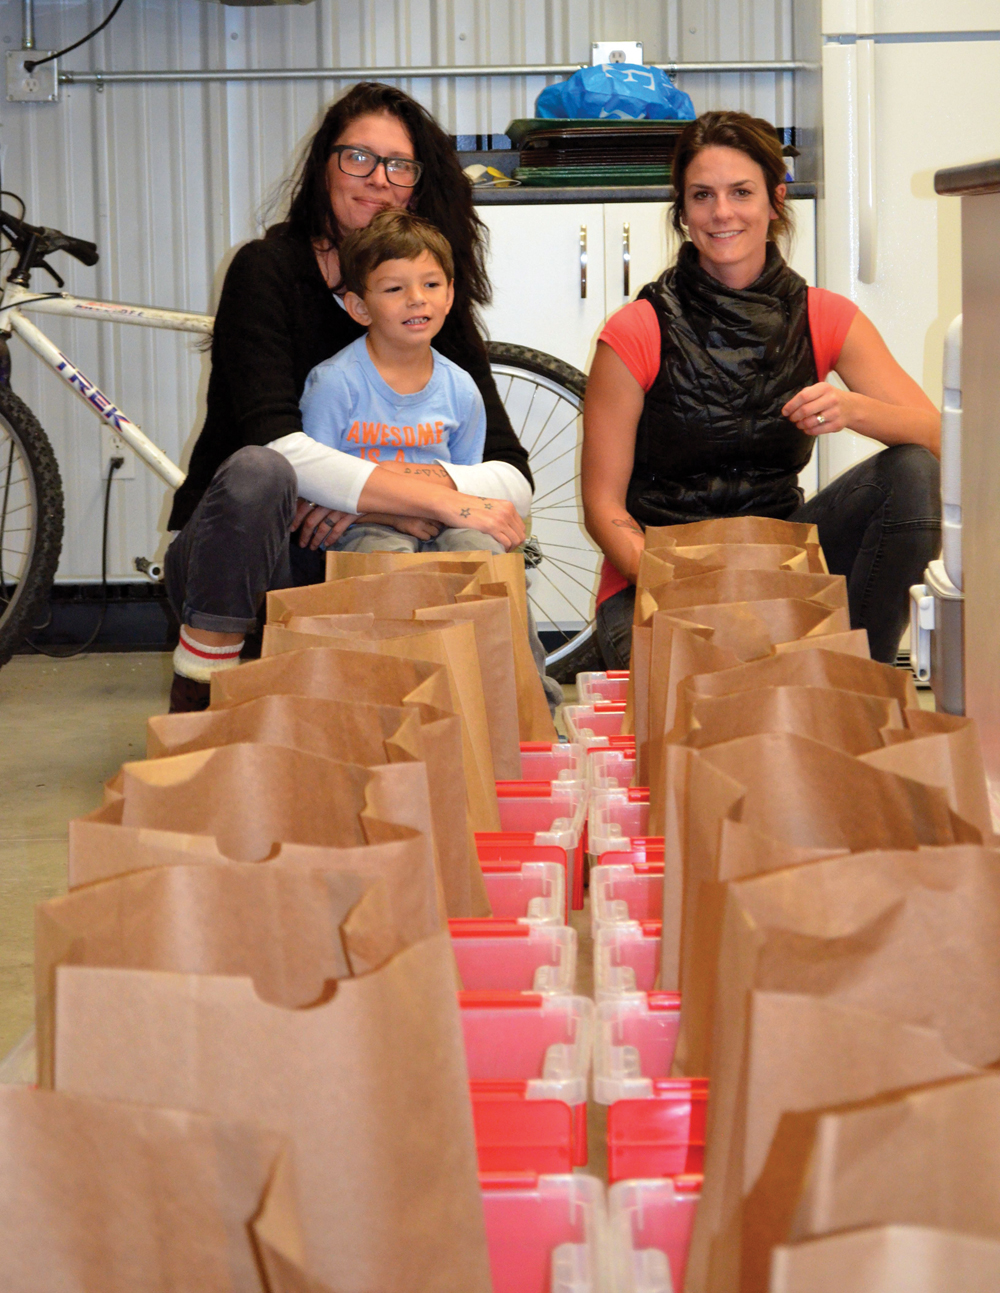 Erin Gobeil (l) with her son, Kal-El and Nikki Dean (r) have volunteered to help run the Good Food Box pilot project.